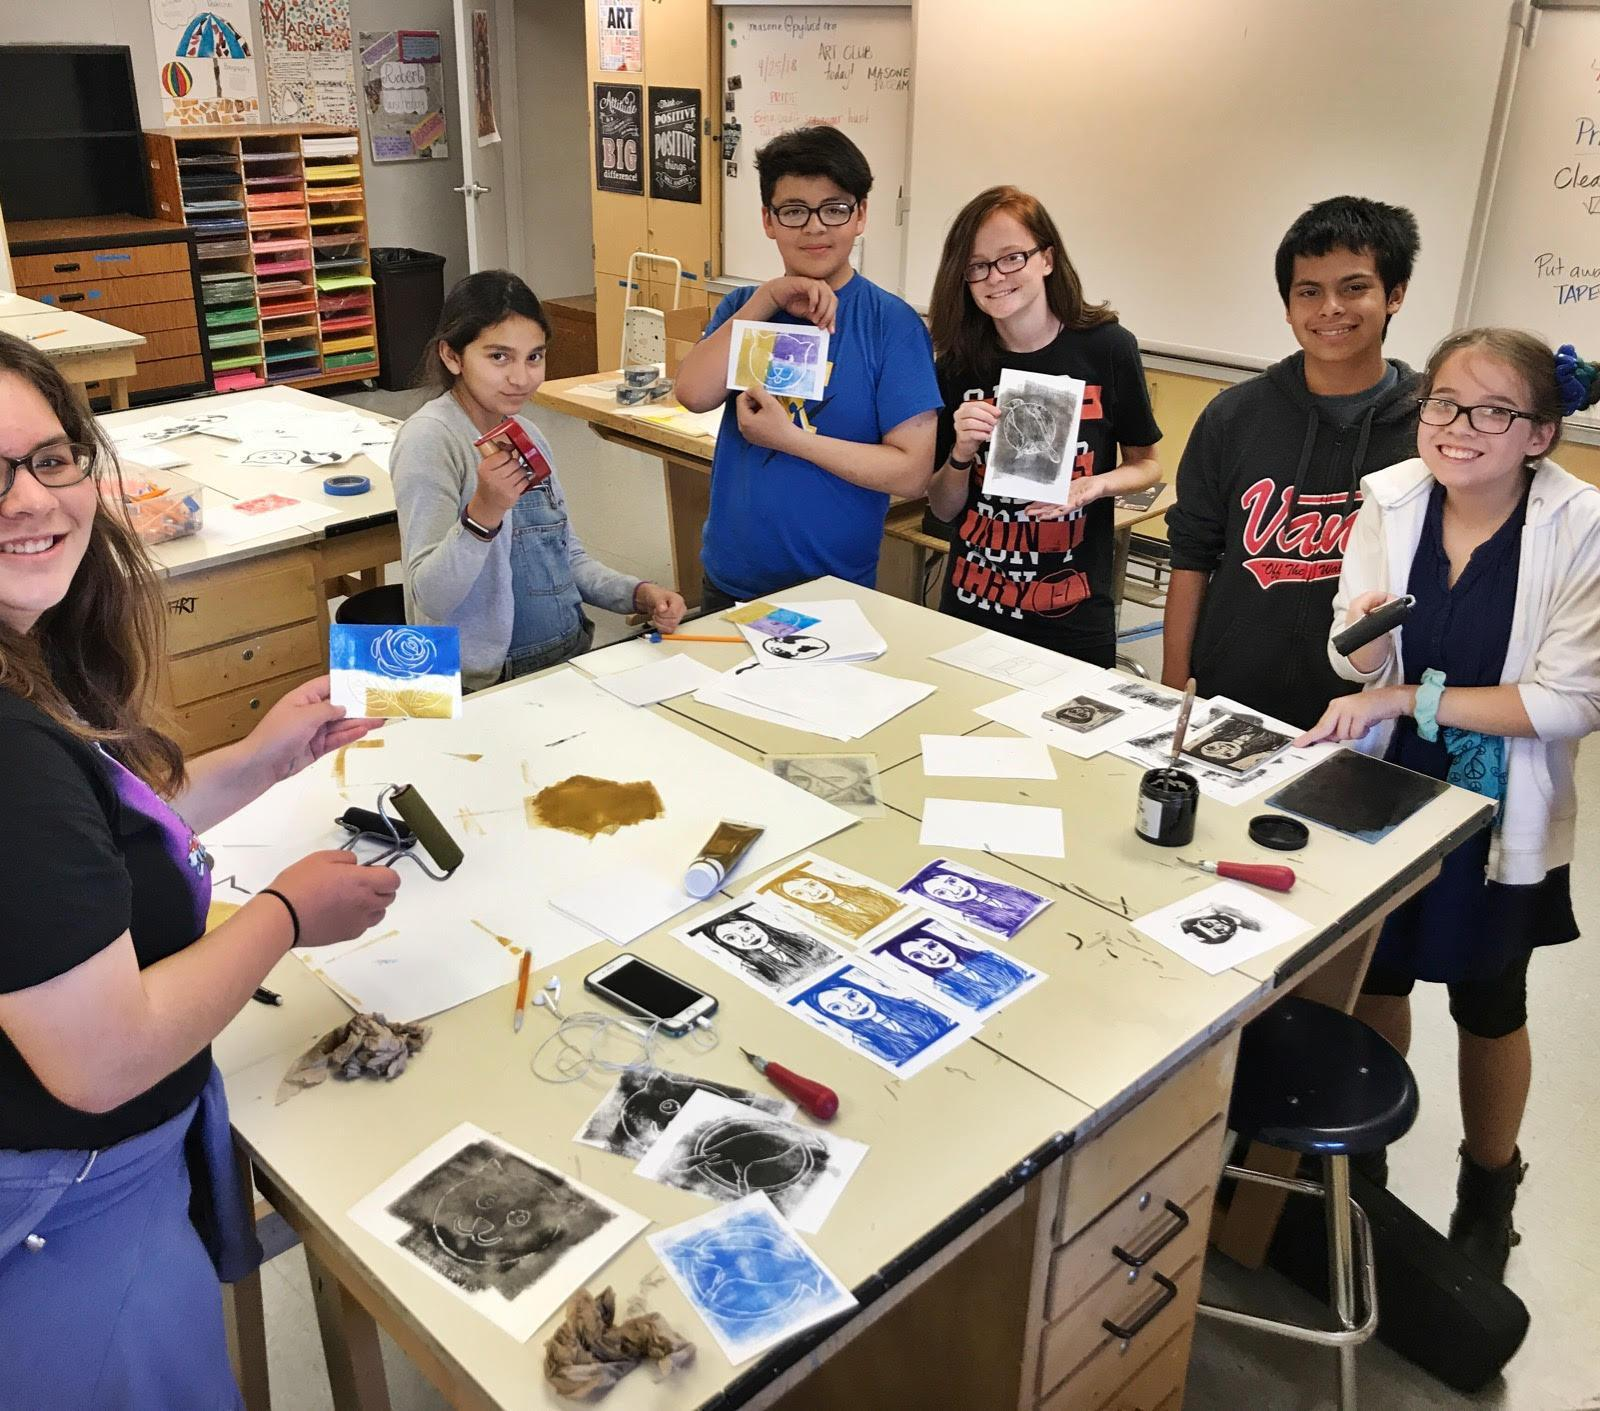 Art Club at Kraemer Middle School